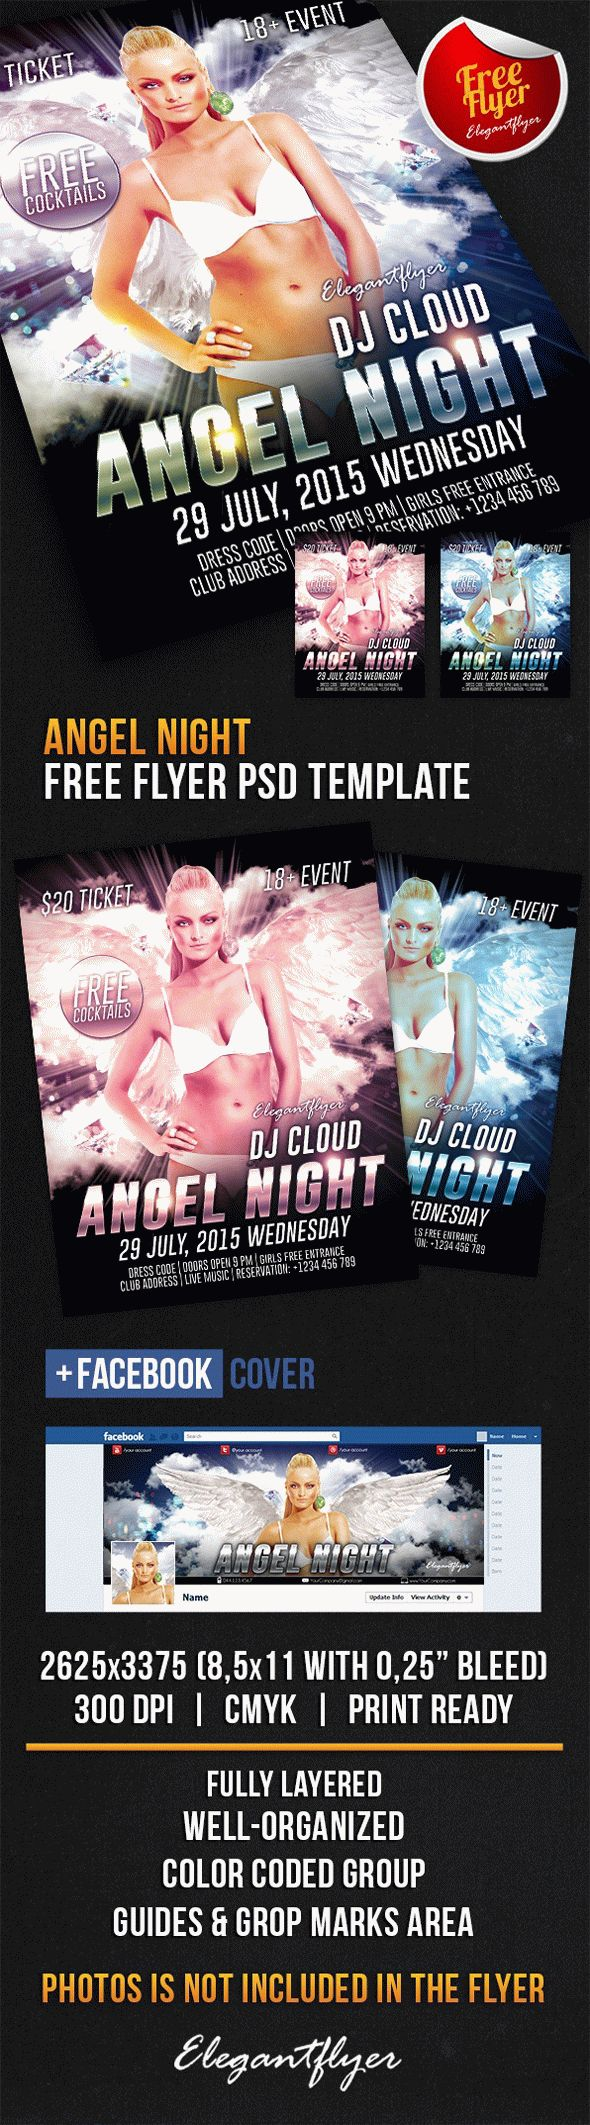 Angel Night – Free Flyer PSD Template + Facebook Cover